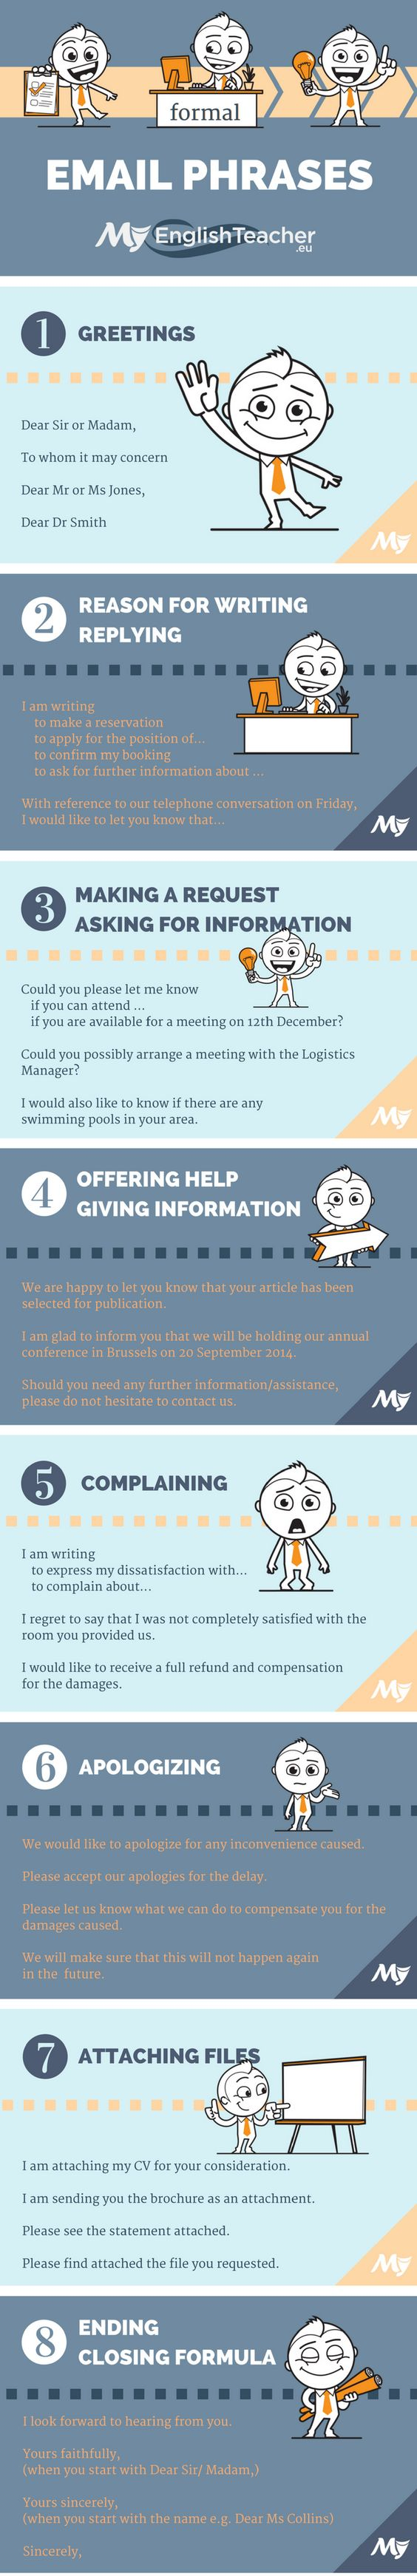 Formal and Informal Email Phrases from Greetings to